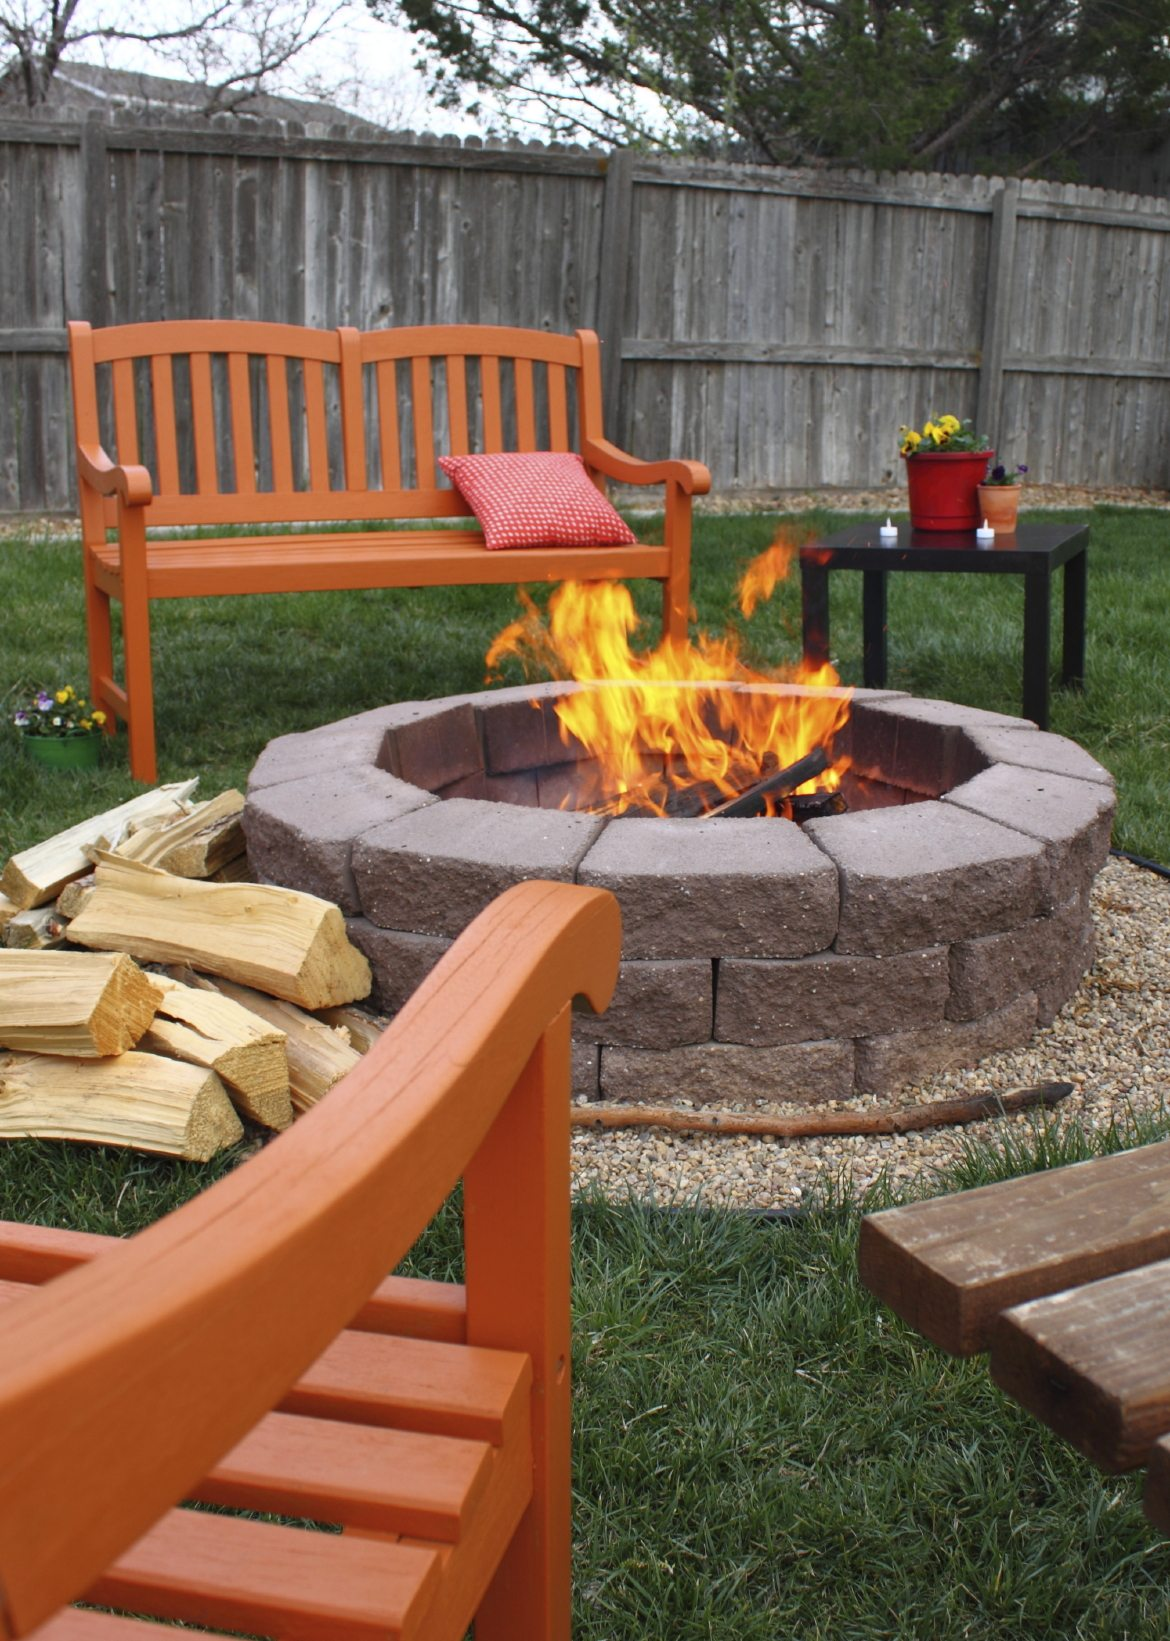 Outdoor Bed and Fire Pit Video